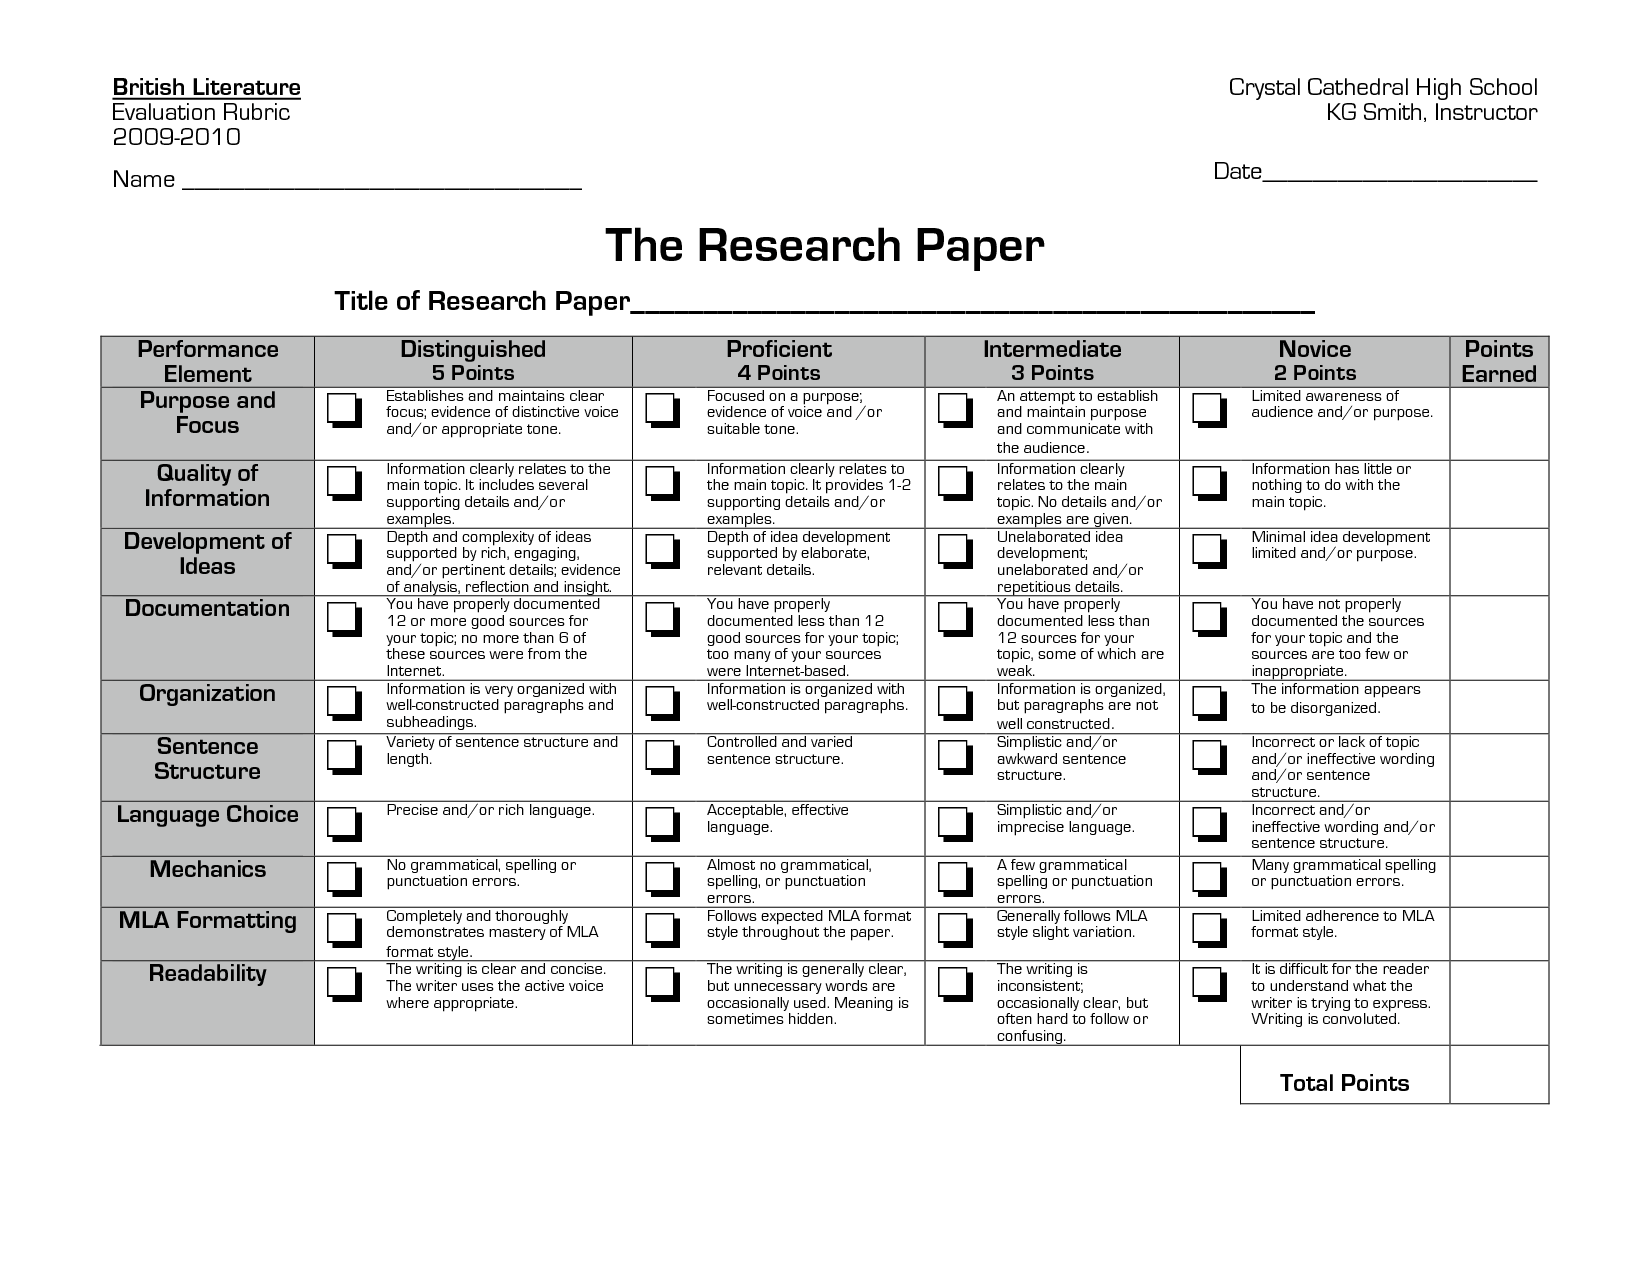 rubric for grading research papers high school Grading rubric for research paper for high school welcome to career websites information database there are over 650 careers listed on this website with an average.